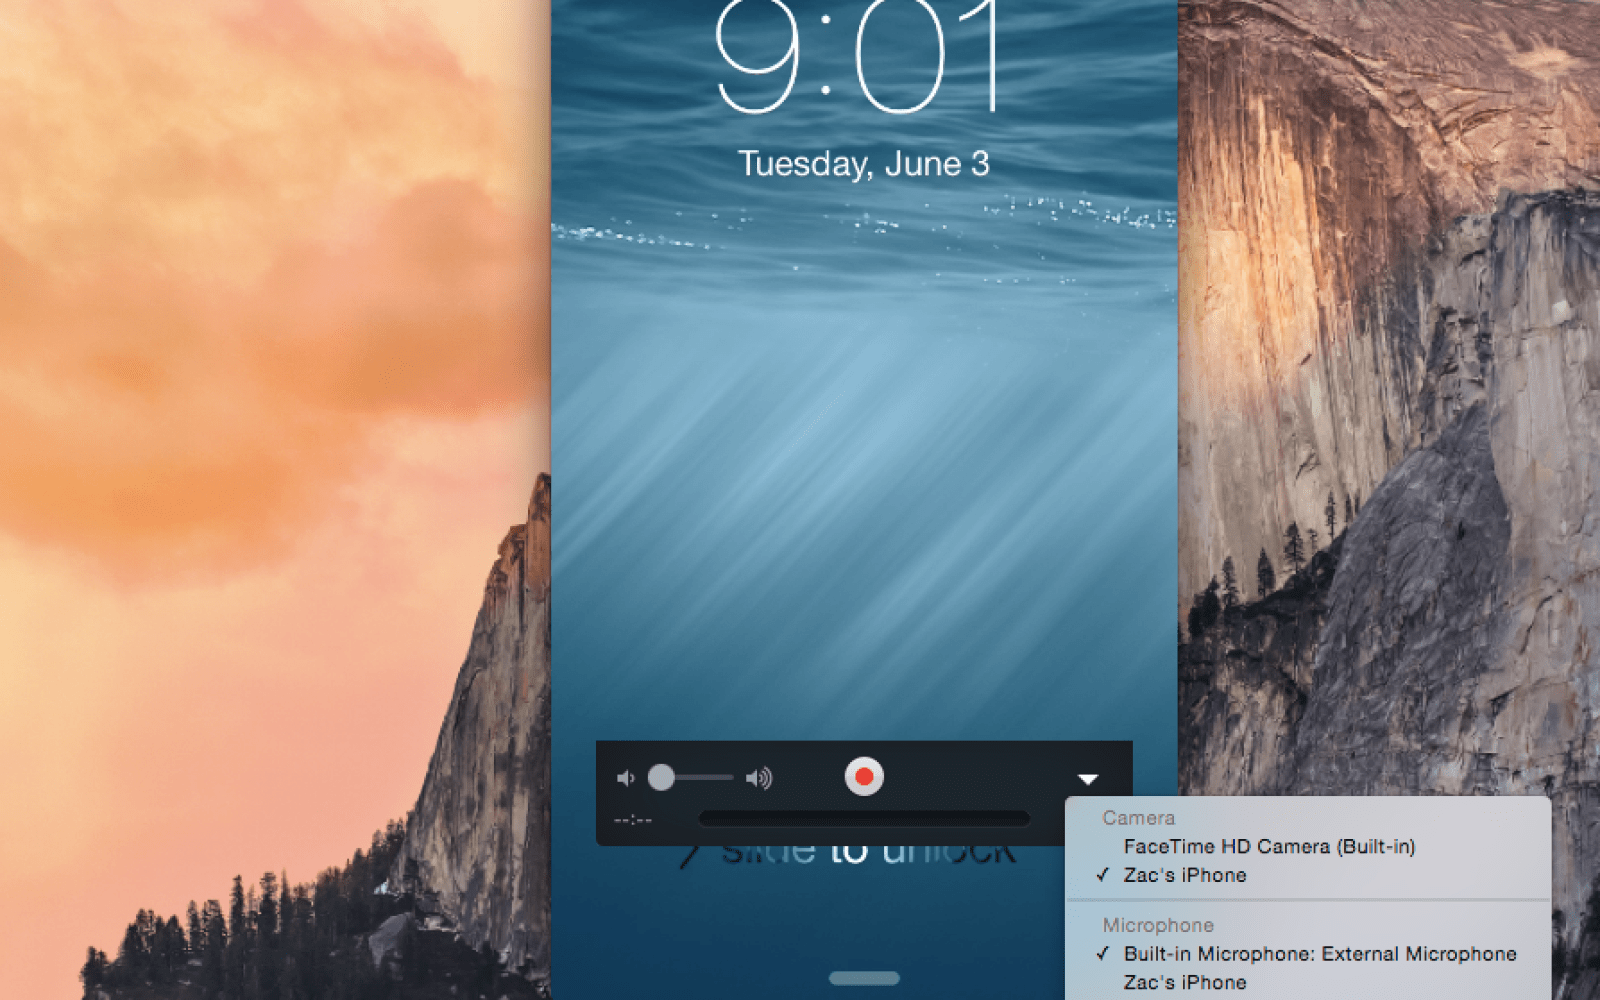 Apple makes it easy for devs (and others) to screencast iOS apps with OS X Yosemite